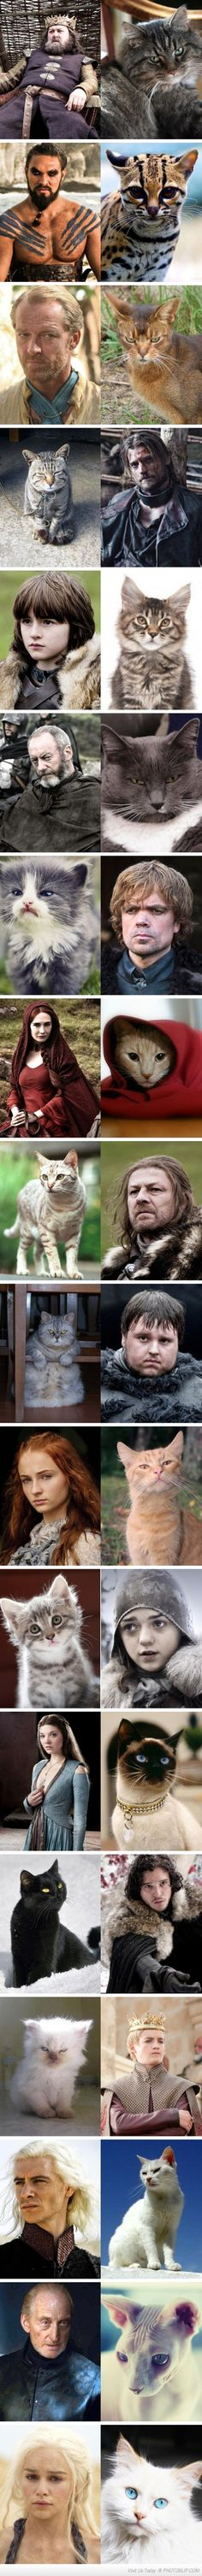 The Game Of Thrones Cast As Cats... lol @ the joffrey one daeneryskitty:O